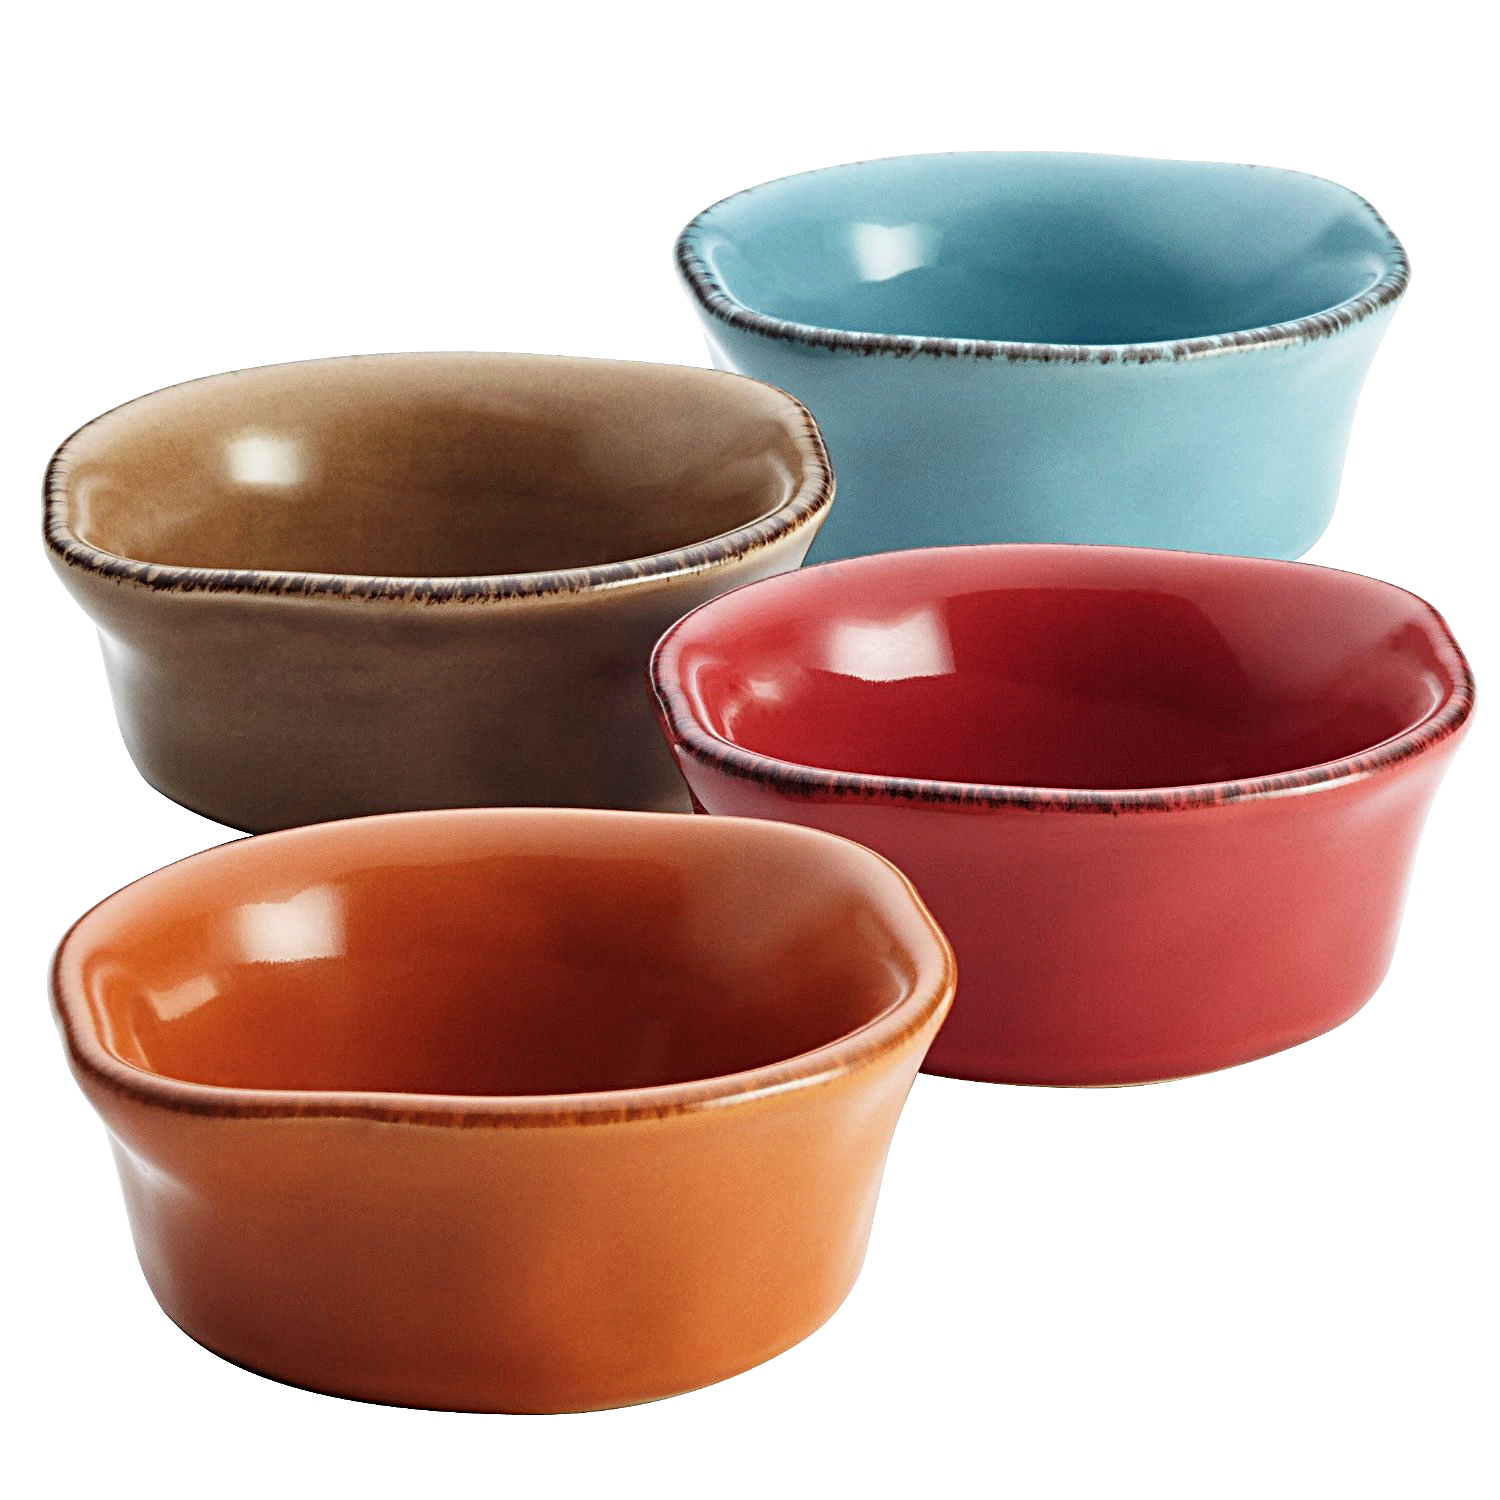 Rachael Ray Cucina Assorted Oval Stoneware Dipping Cup, Set of 4